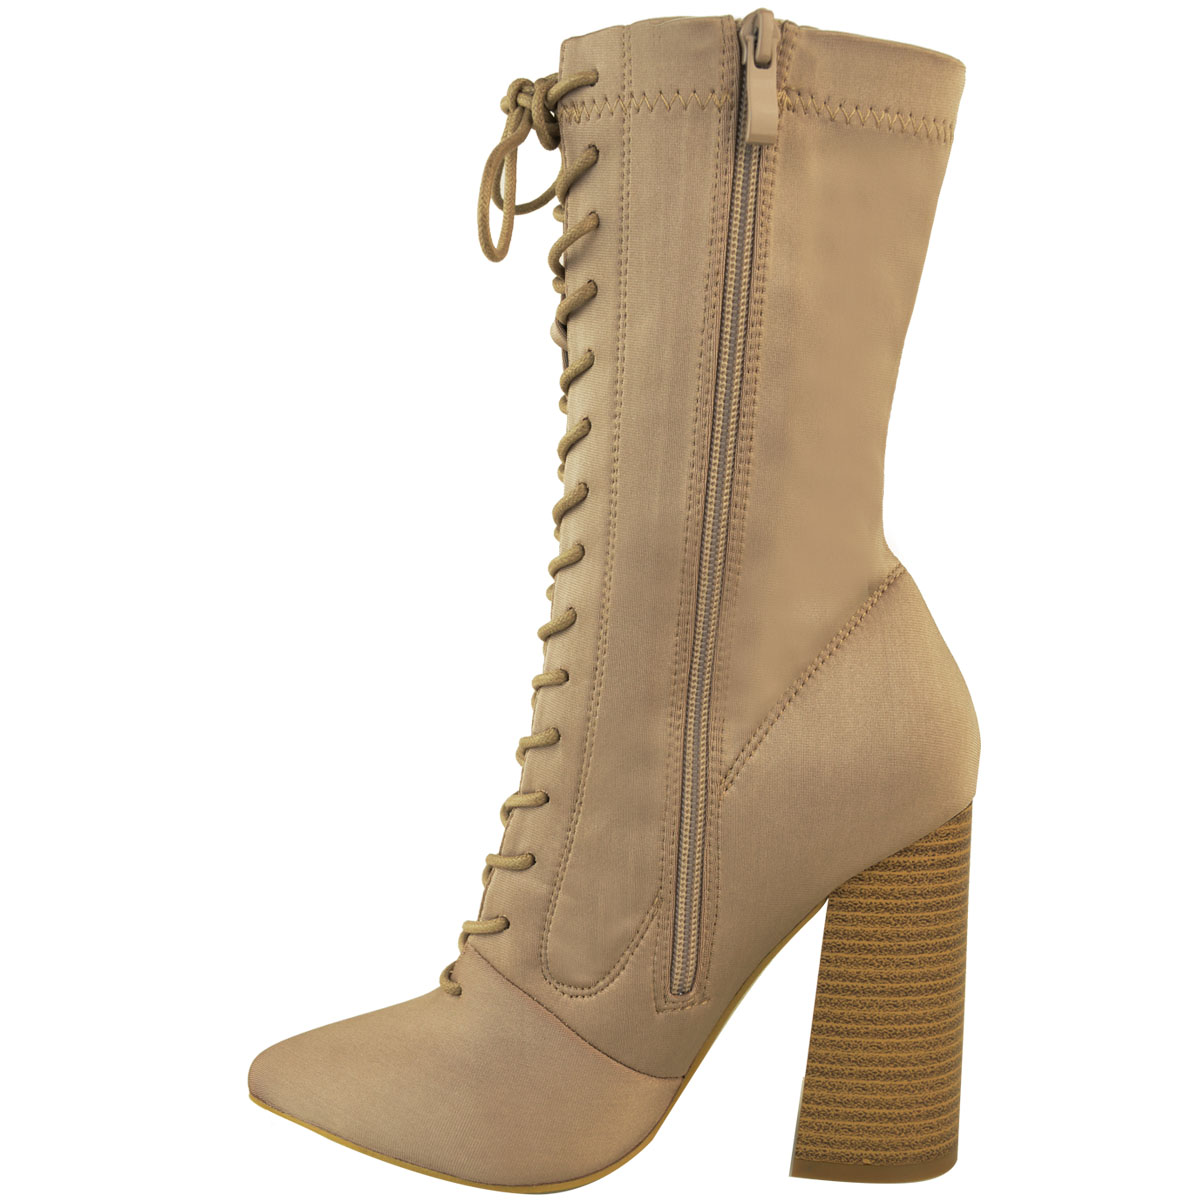 Womens-Ladies-New-Calf-Ankle-Boots-Lycra-Lace-Up-Shoes-Pointed-Toe-Stretch-Size miniatuur 12